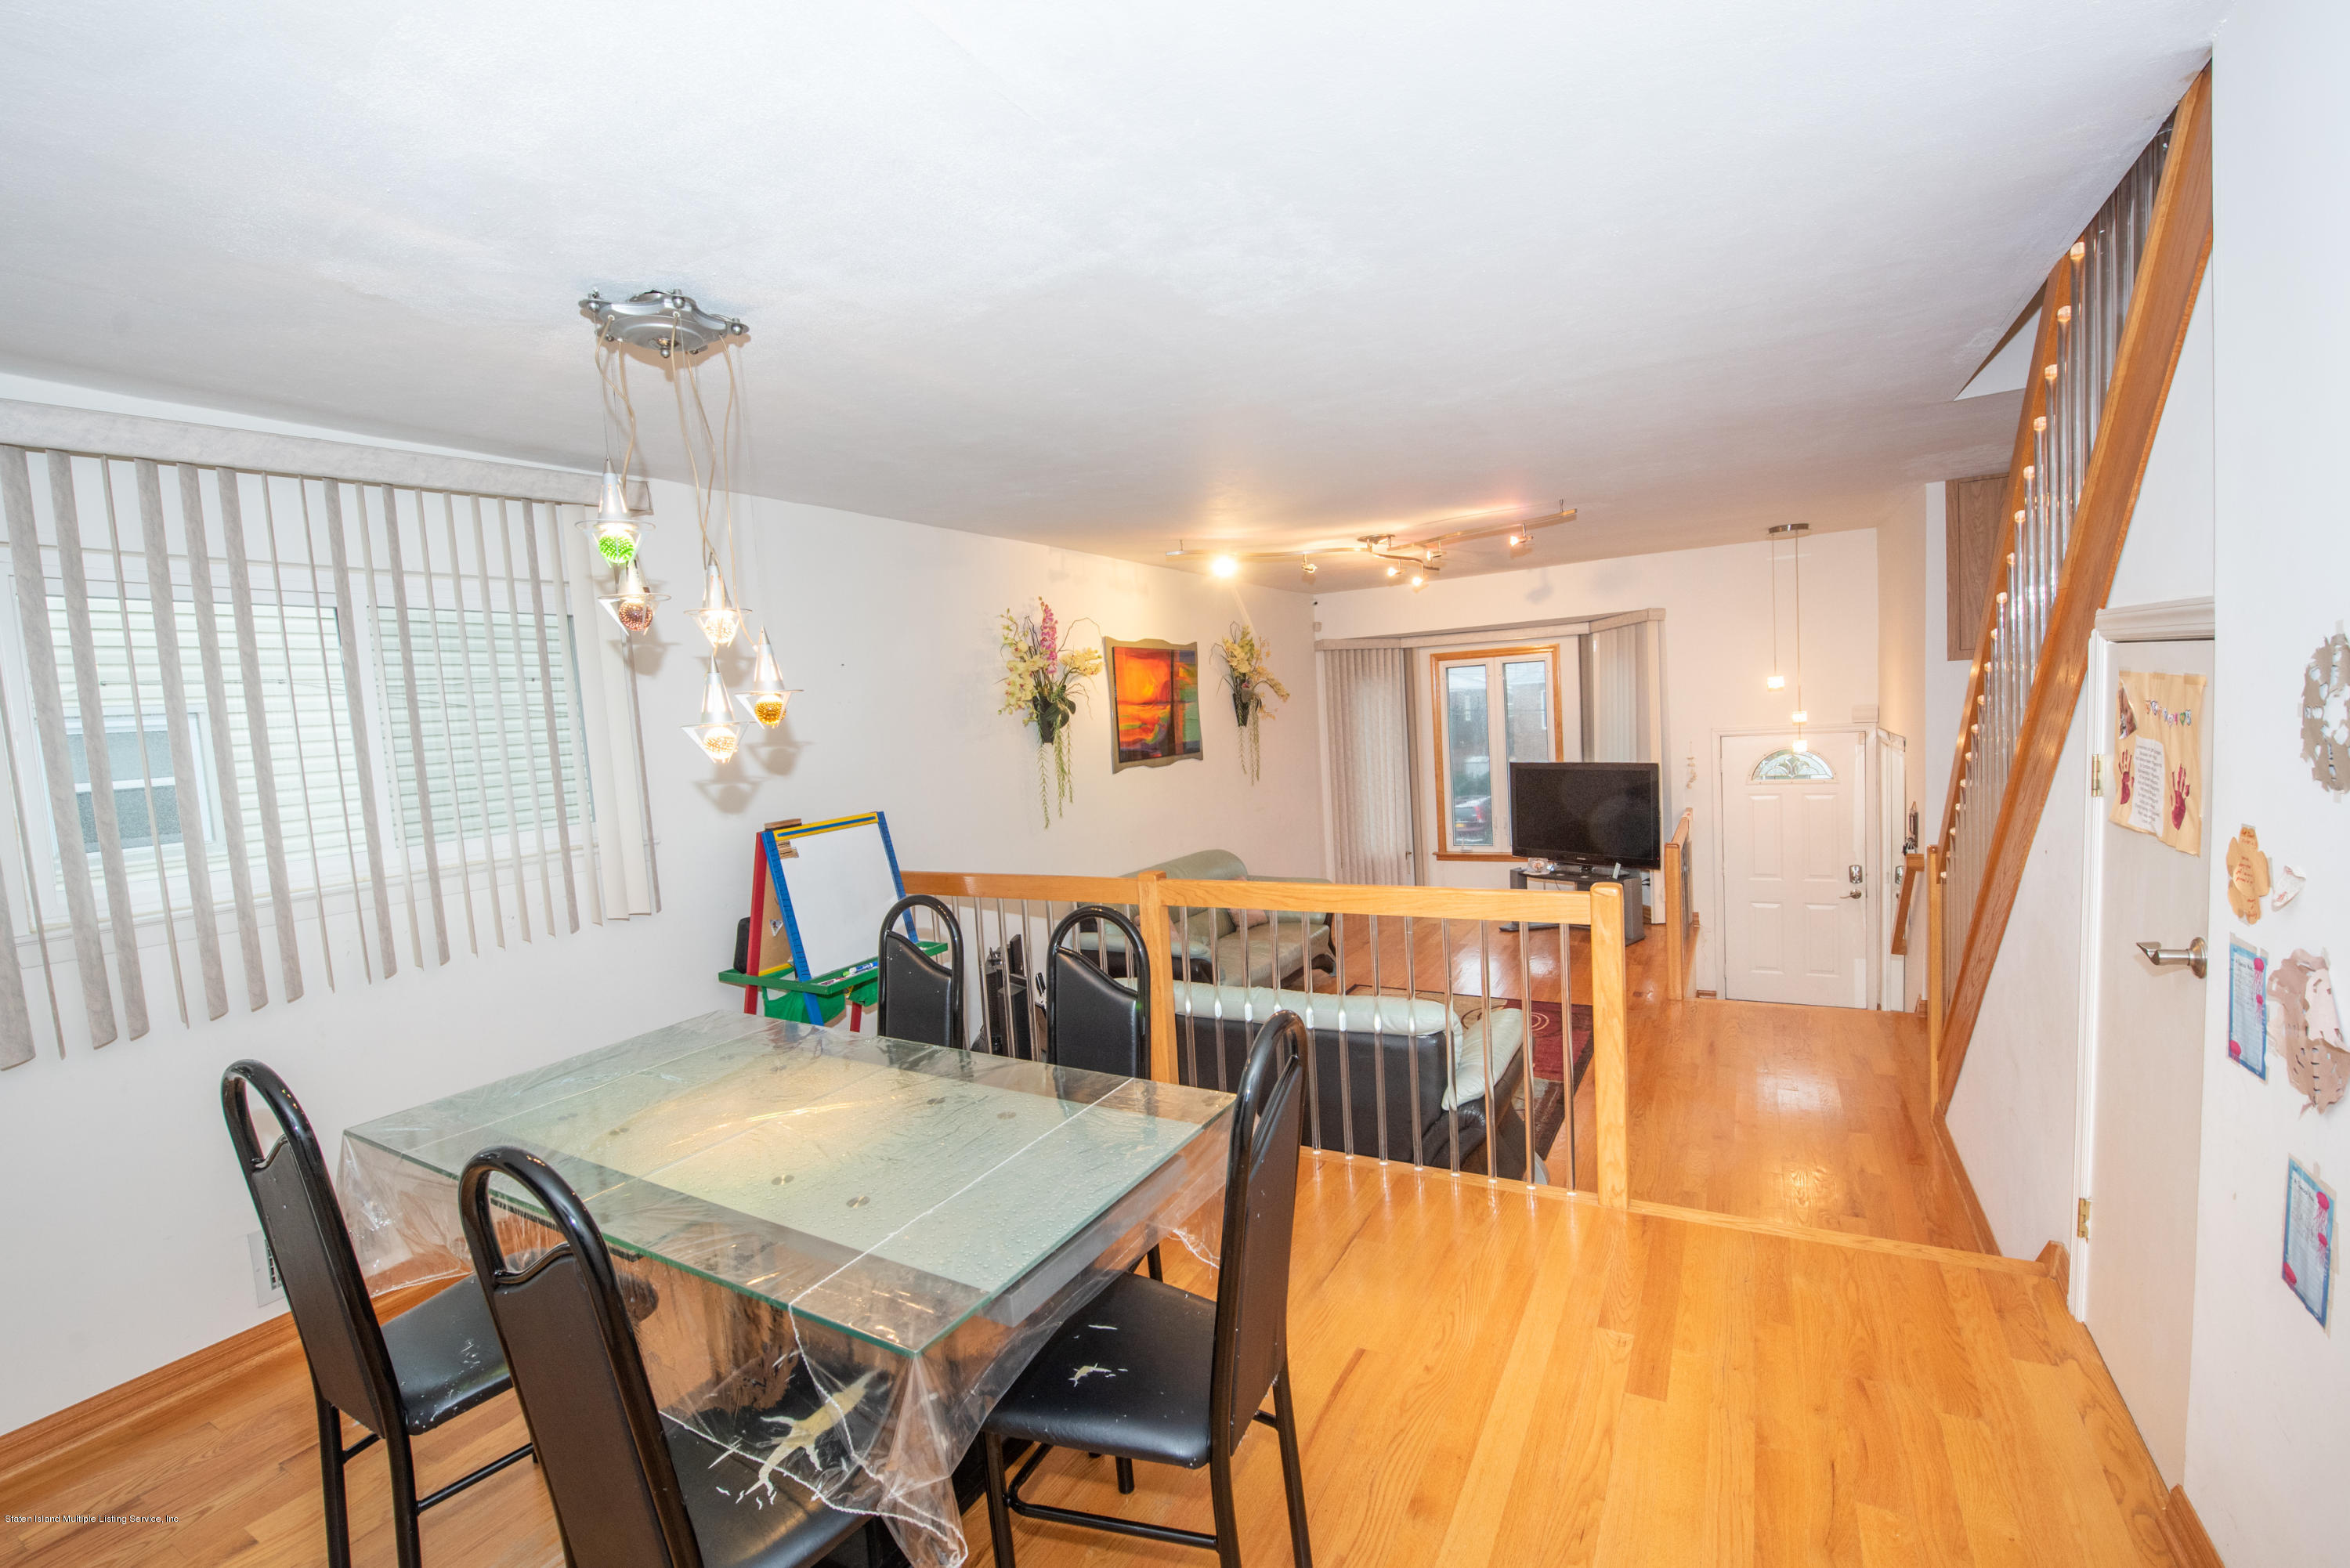 Single Family - Semi-Attached 76 Mcveigh Avenue  Staten Island, NY 10314, MLS-1133370-6